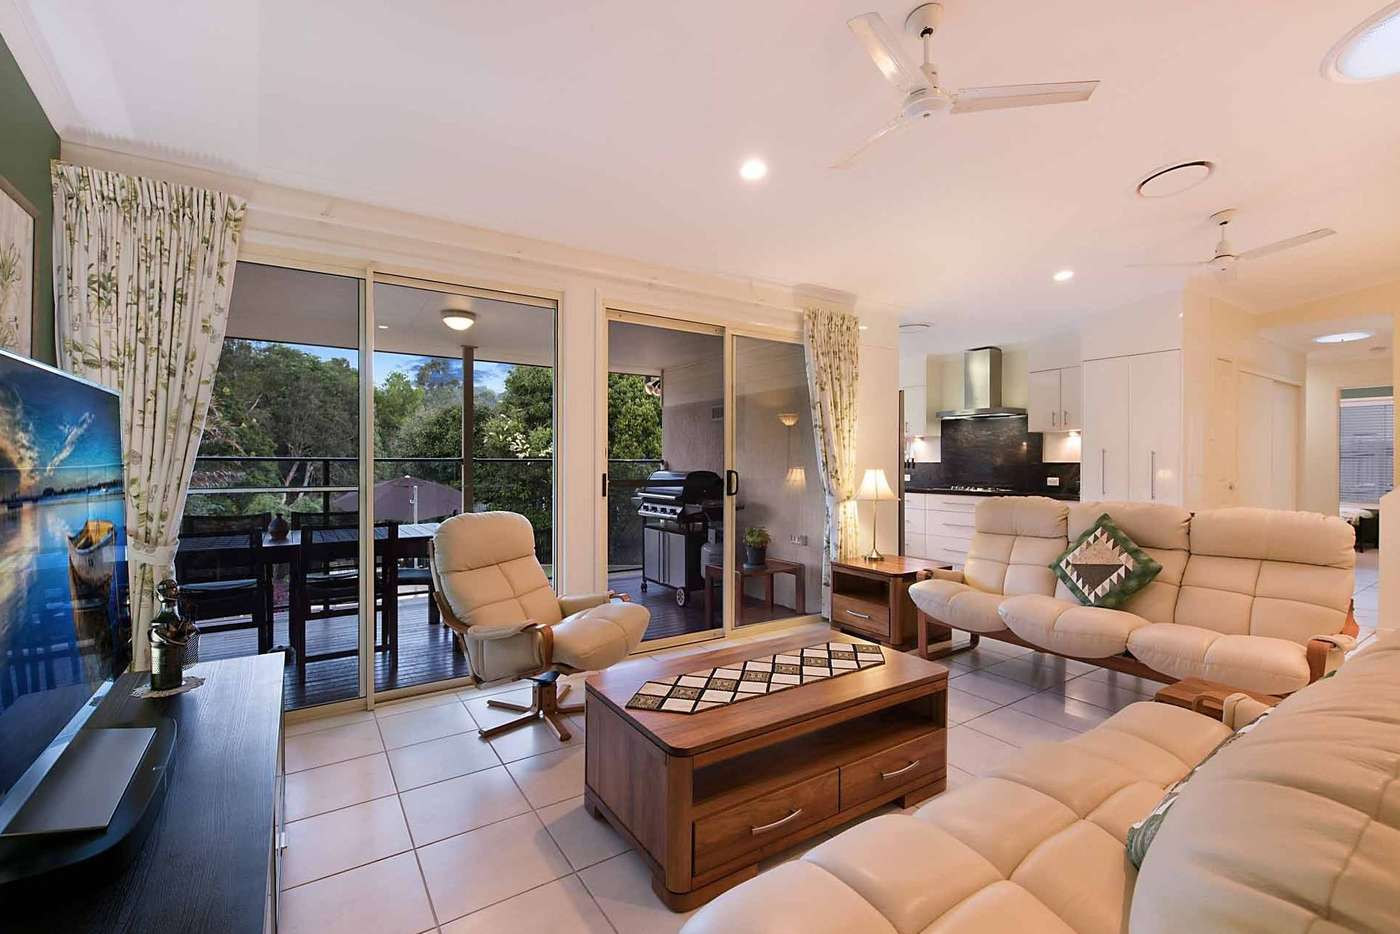 Fifth view of Homely house listing, 5 Tangerine Place, Palmwoods QLD 4555